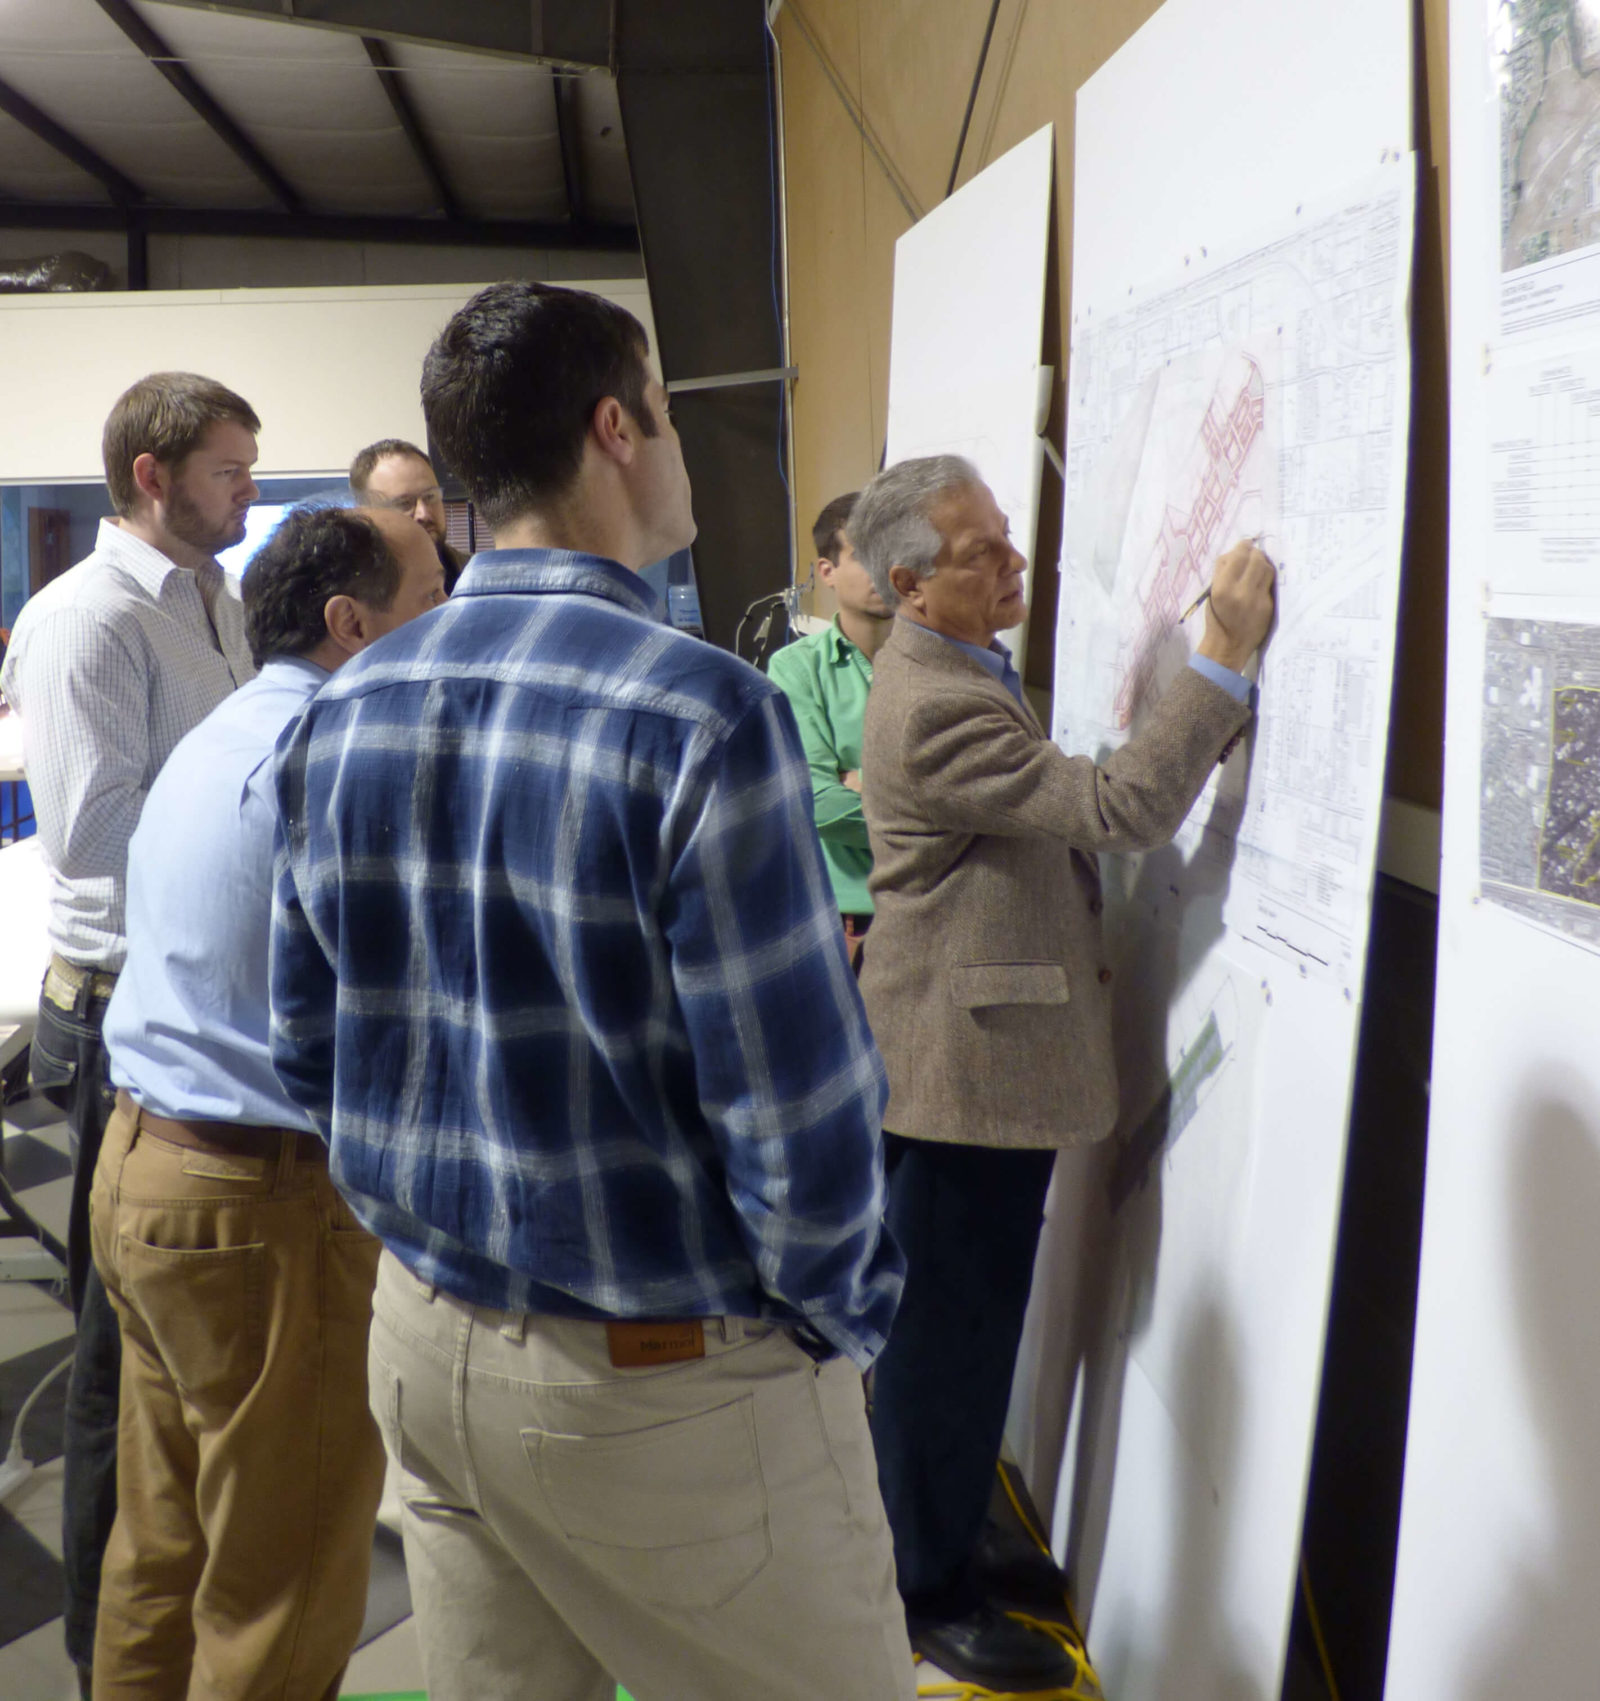 Andres Duany makes planning edits before onlookers at Vista Field Charrette.